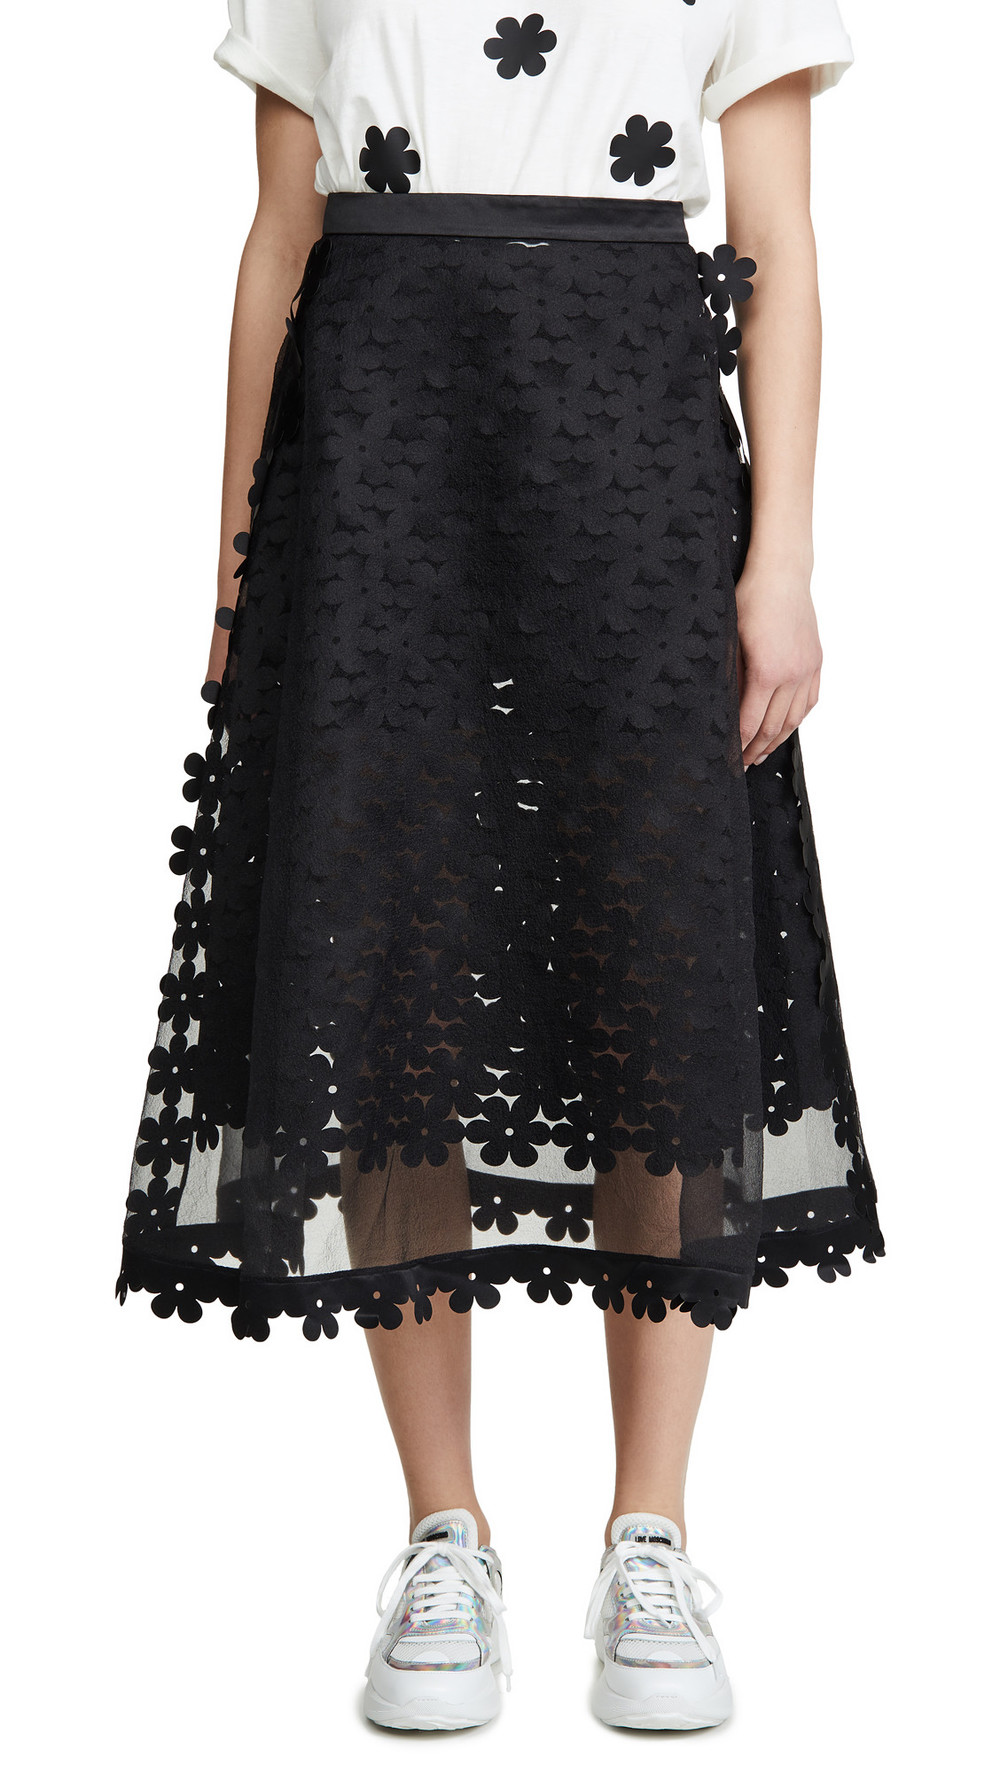 Paskal Double Layered Laser Cut Skirt in black